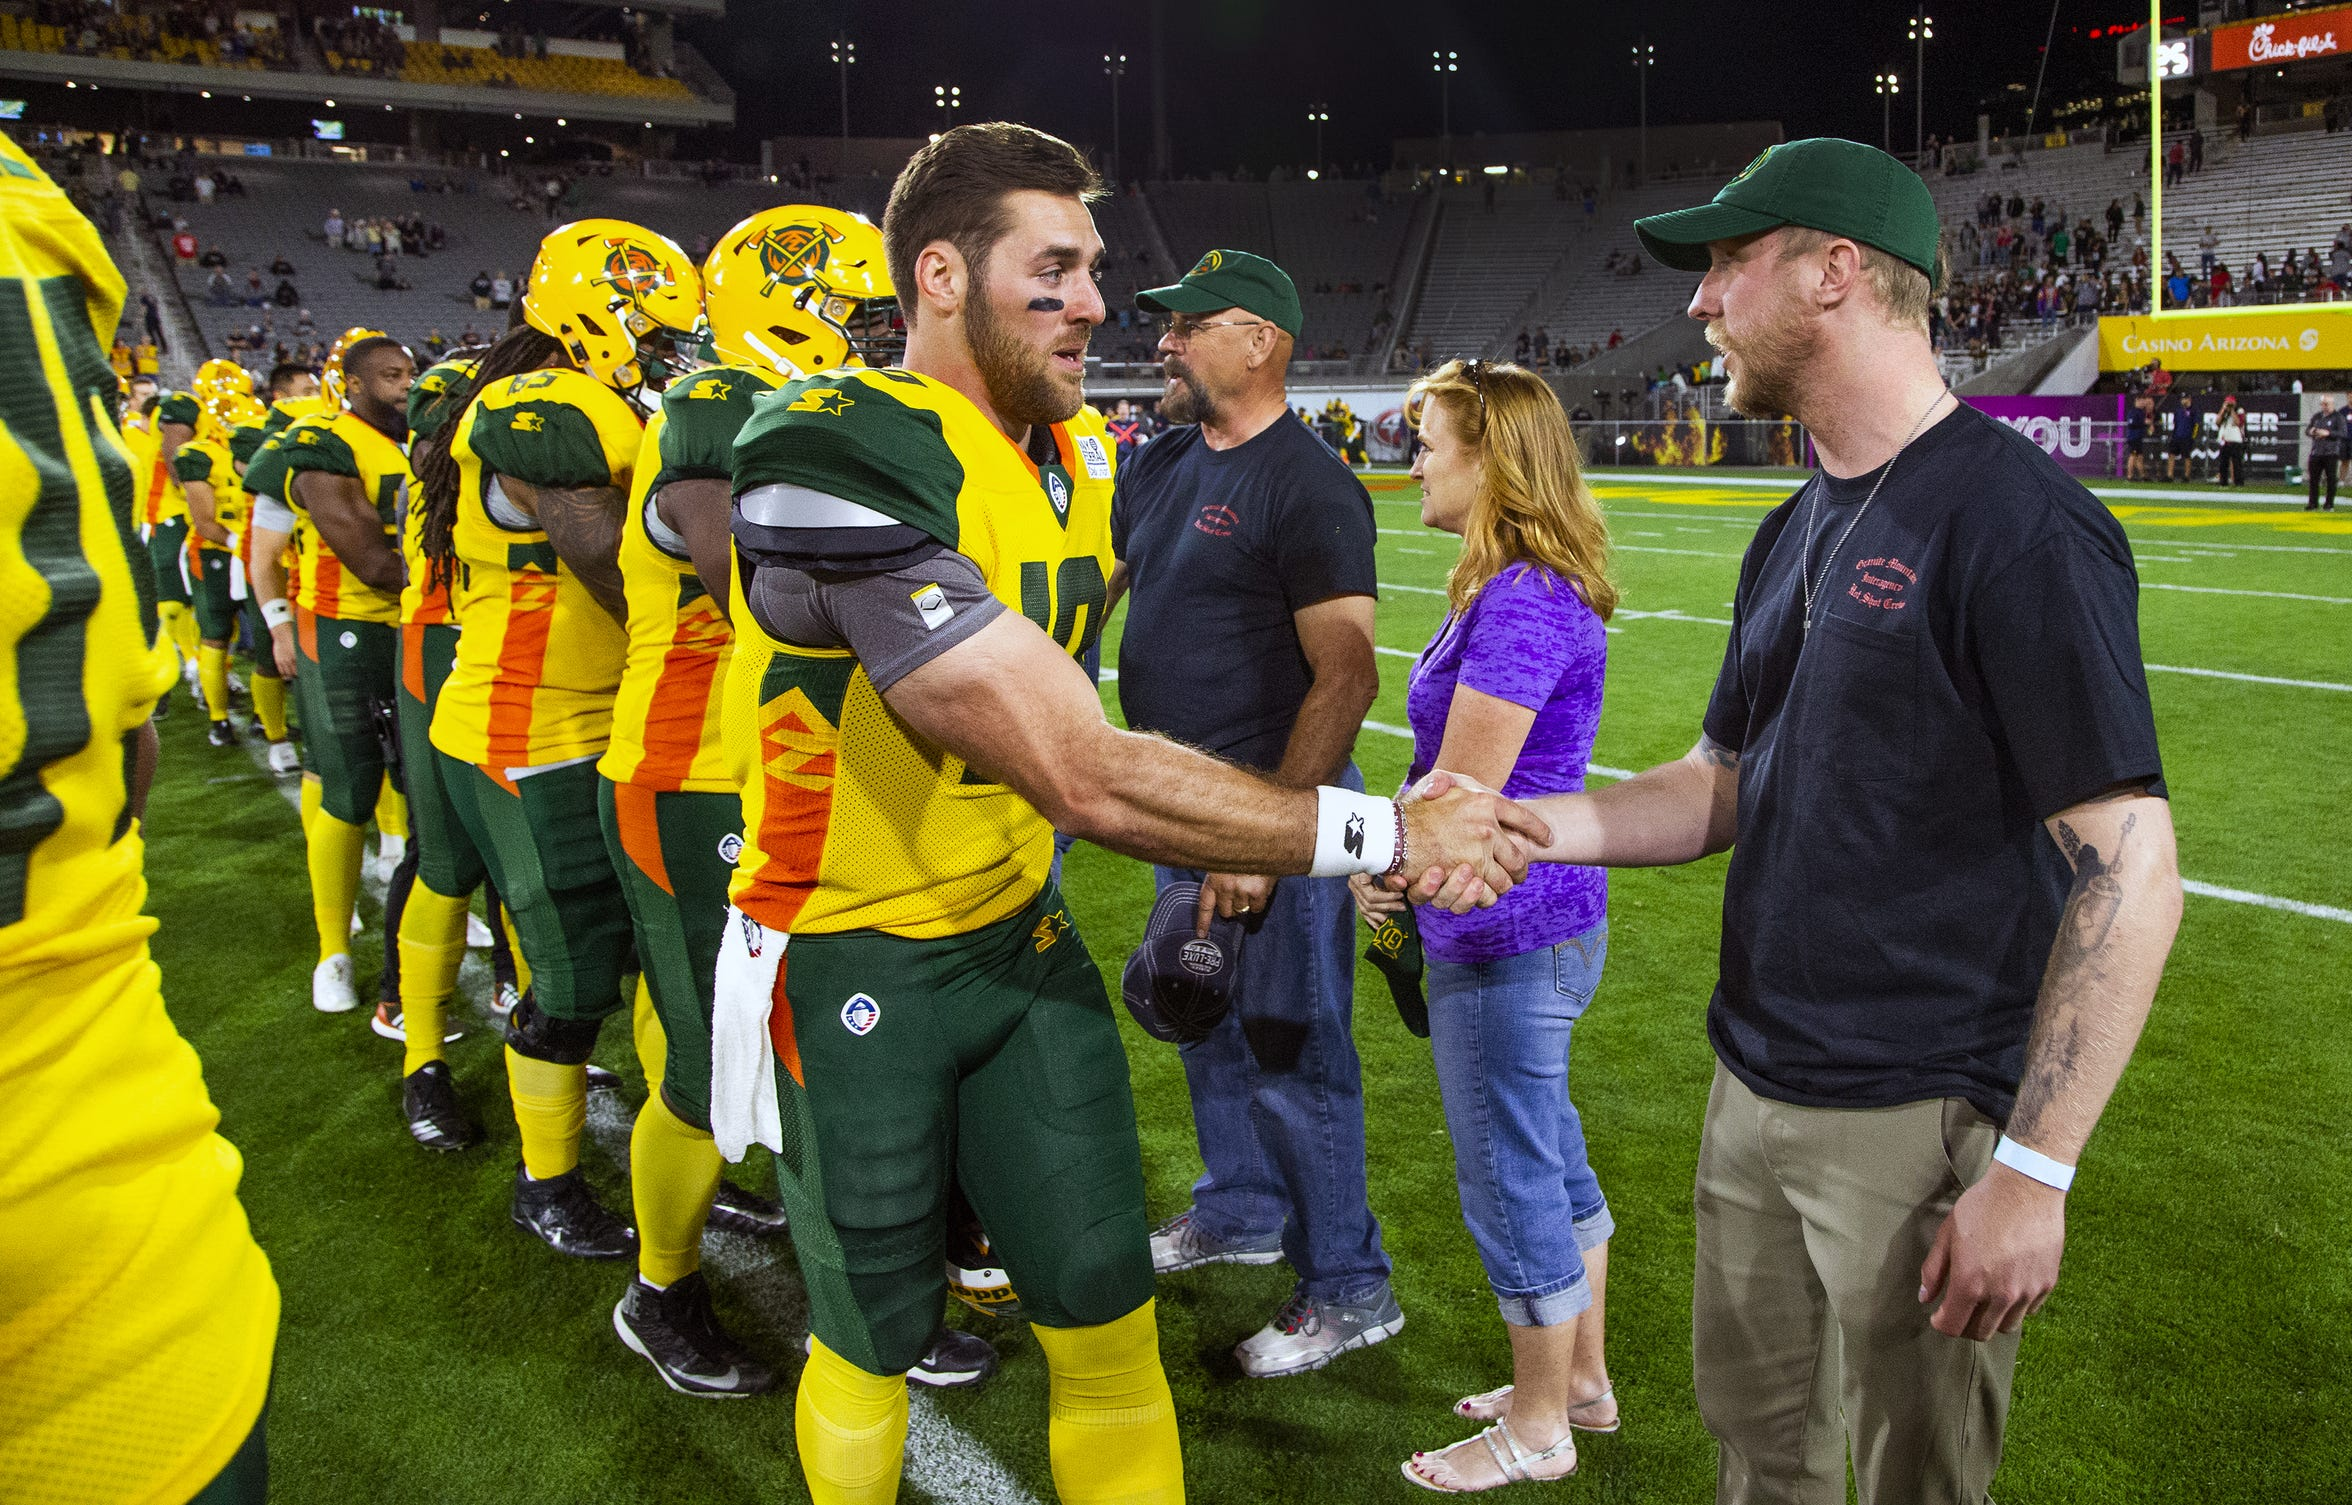 Brendan McDonough, the lone-surviving member of the Granite Mountain Hotshots, greets quarterback Trevor Knight and other members of the Arizona Hotshots after being honored along with family members of the crew at a game last month.